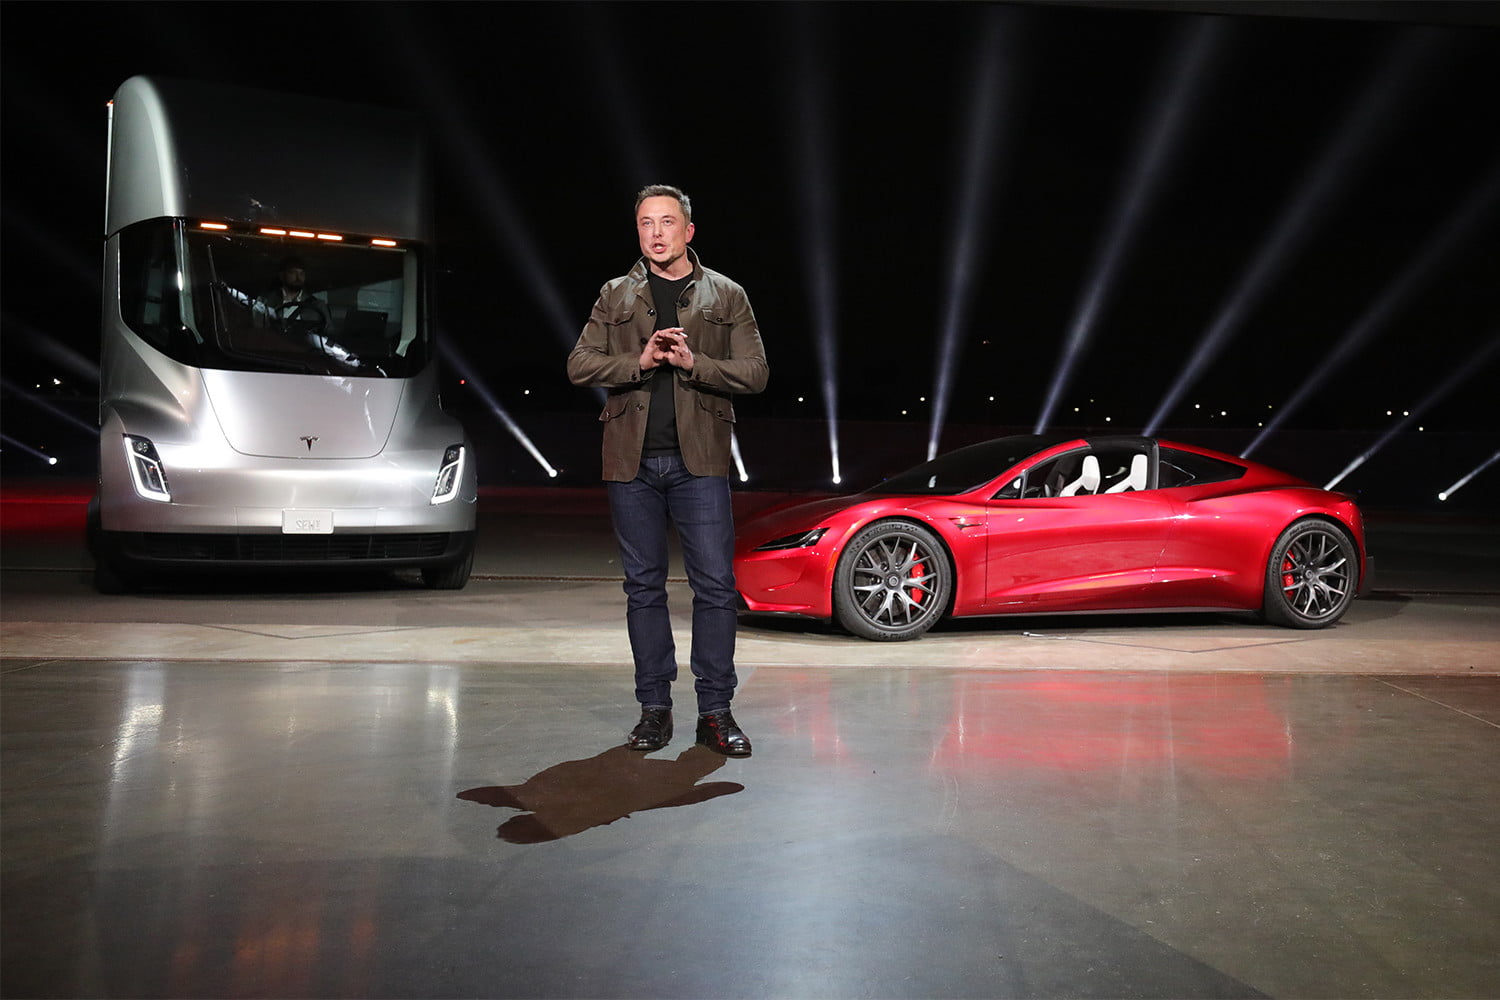 Whistleblower says a drug-peddling Mexican cartel thrives in Tesla's Gigafactory